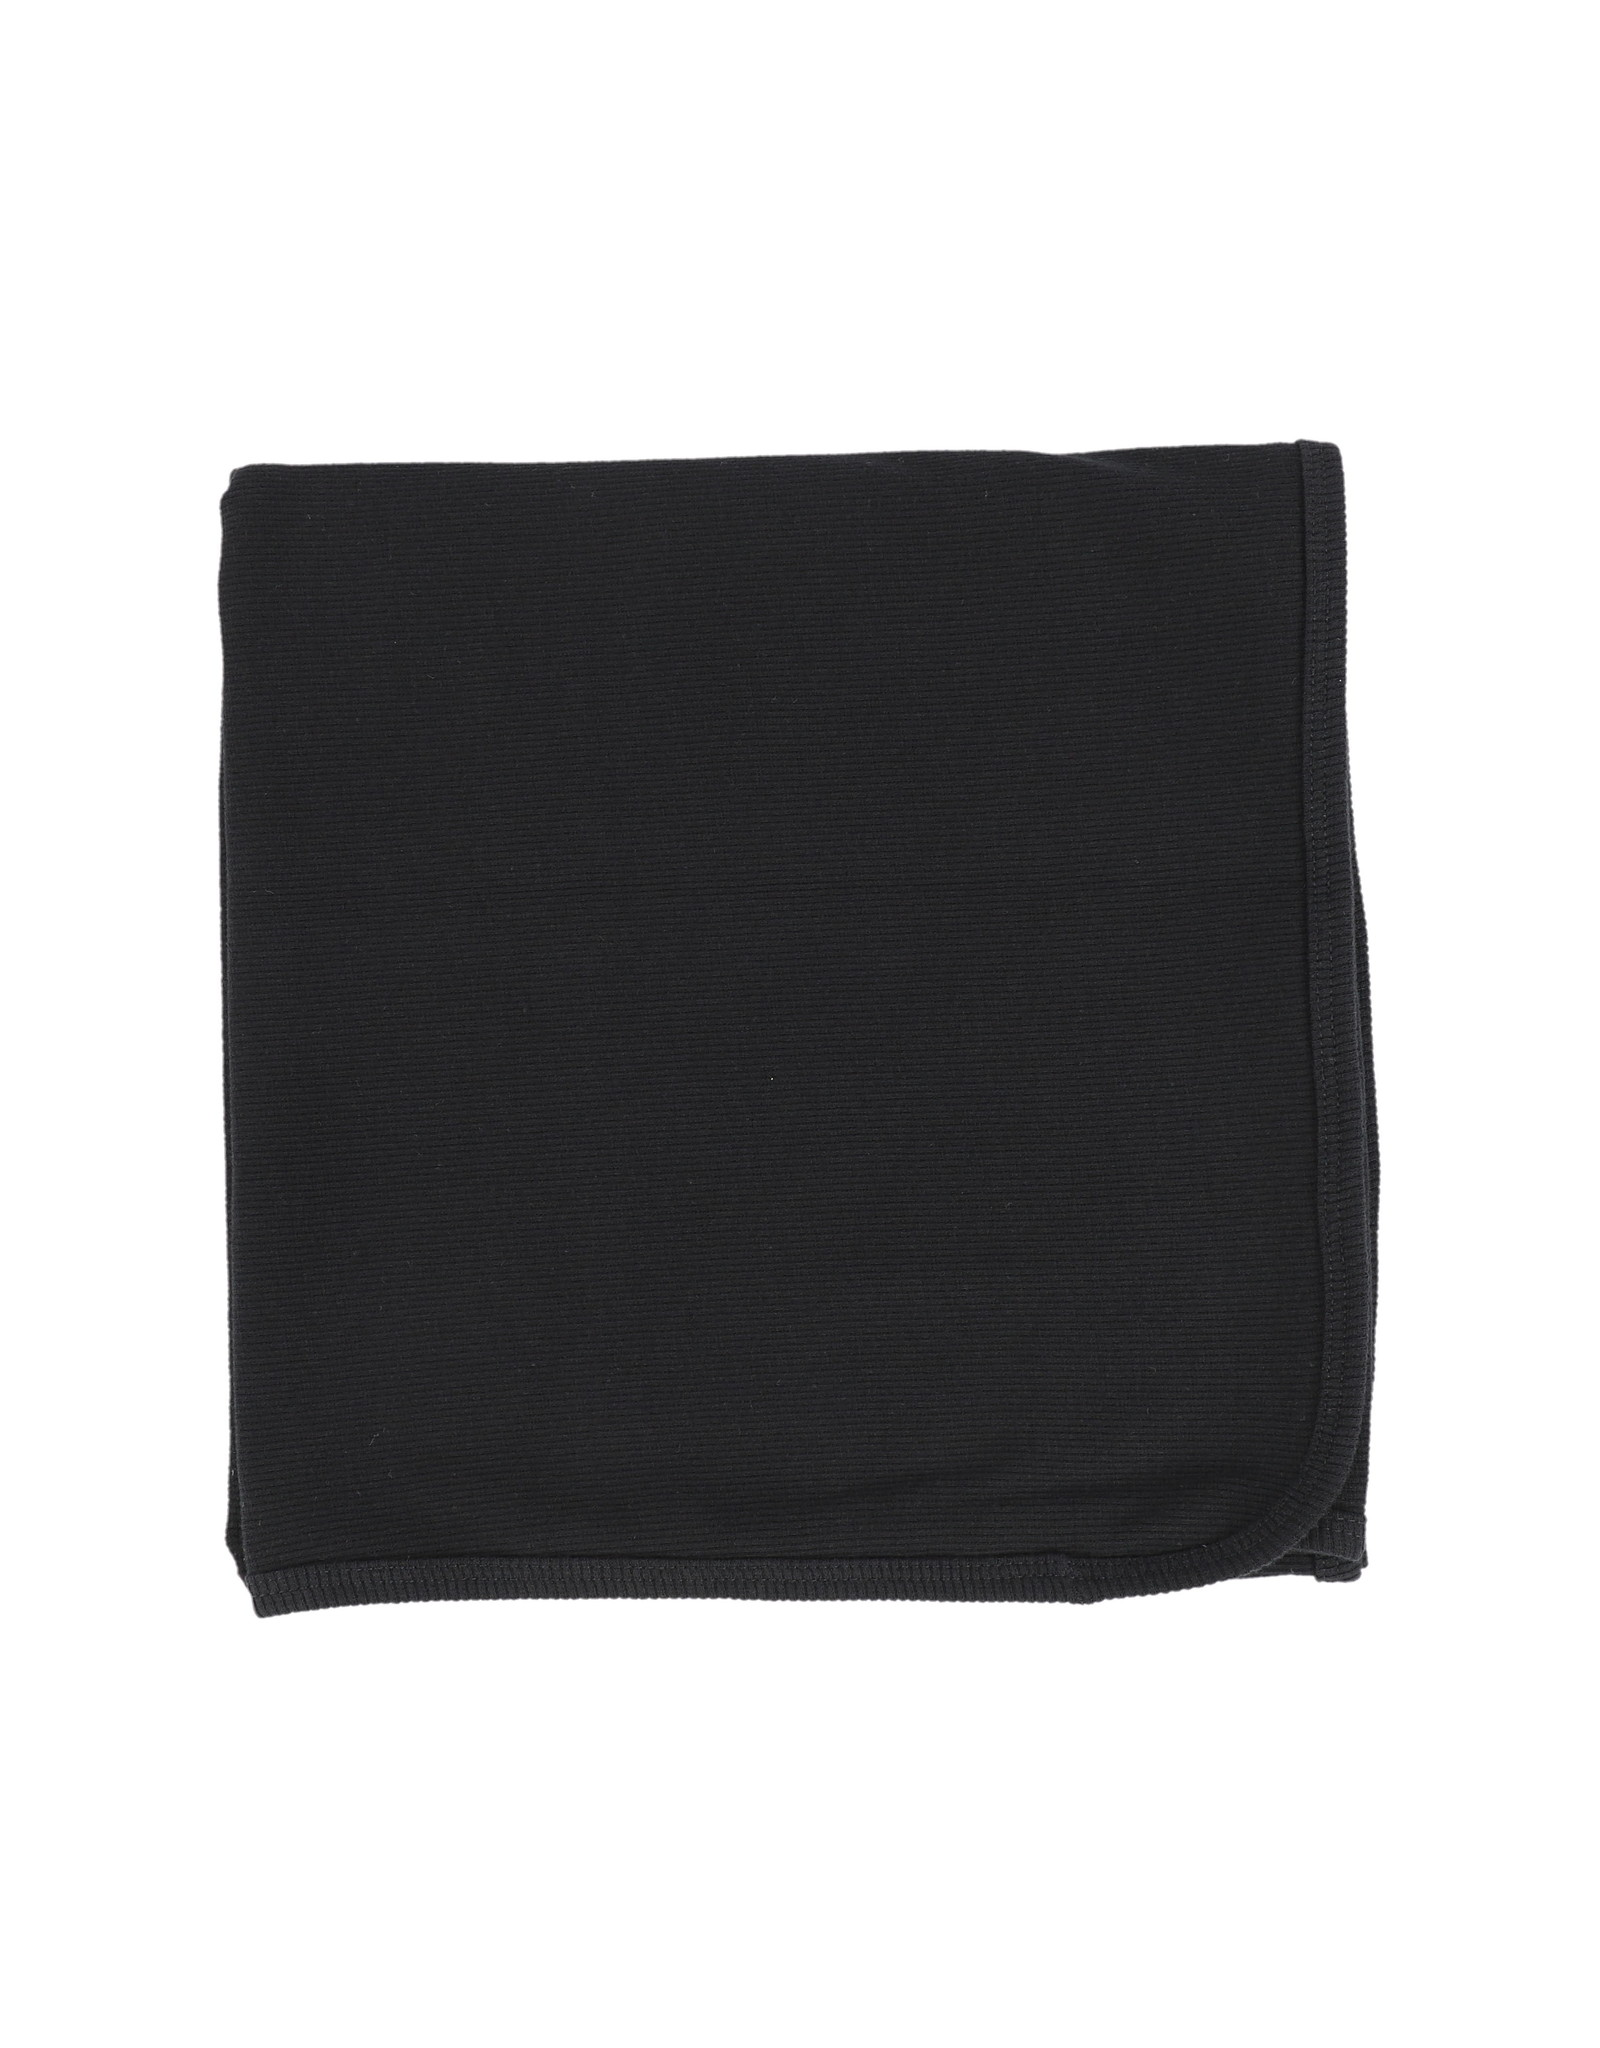 LIL LEGS FW21 Classic Ribbed Blanket